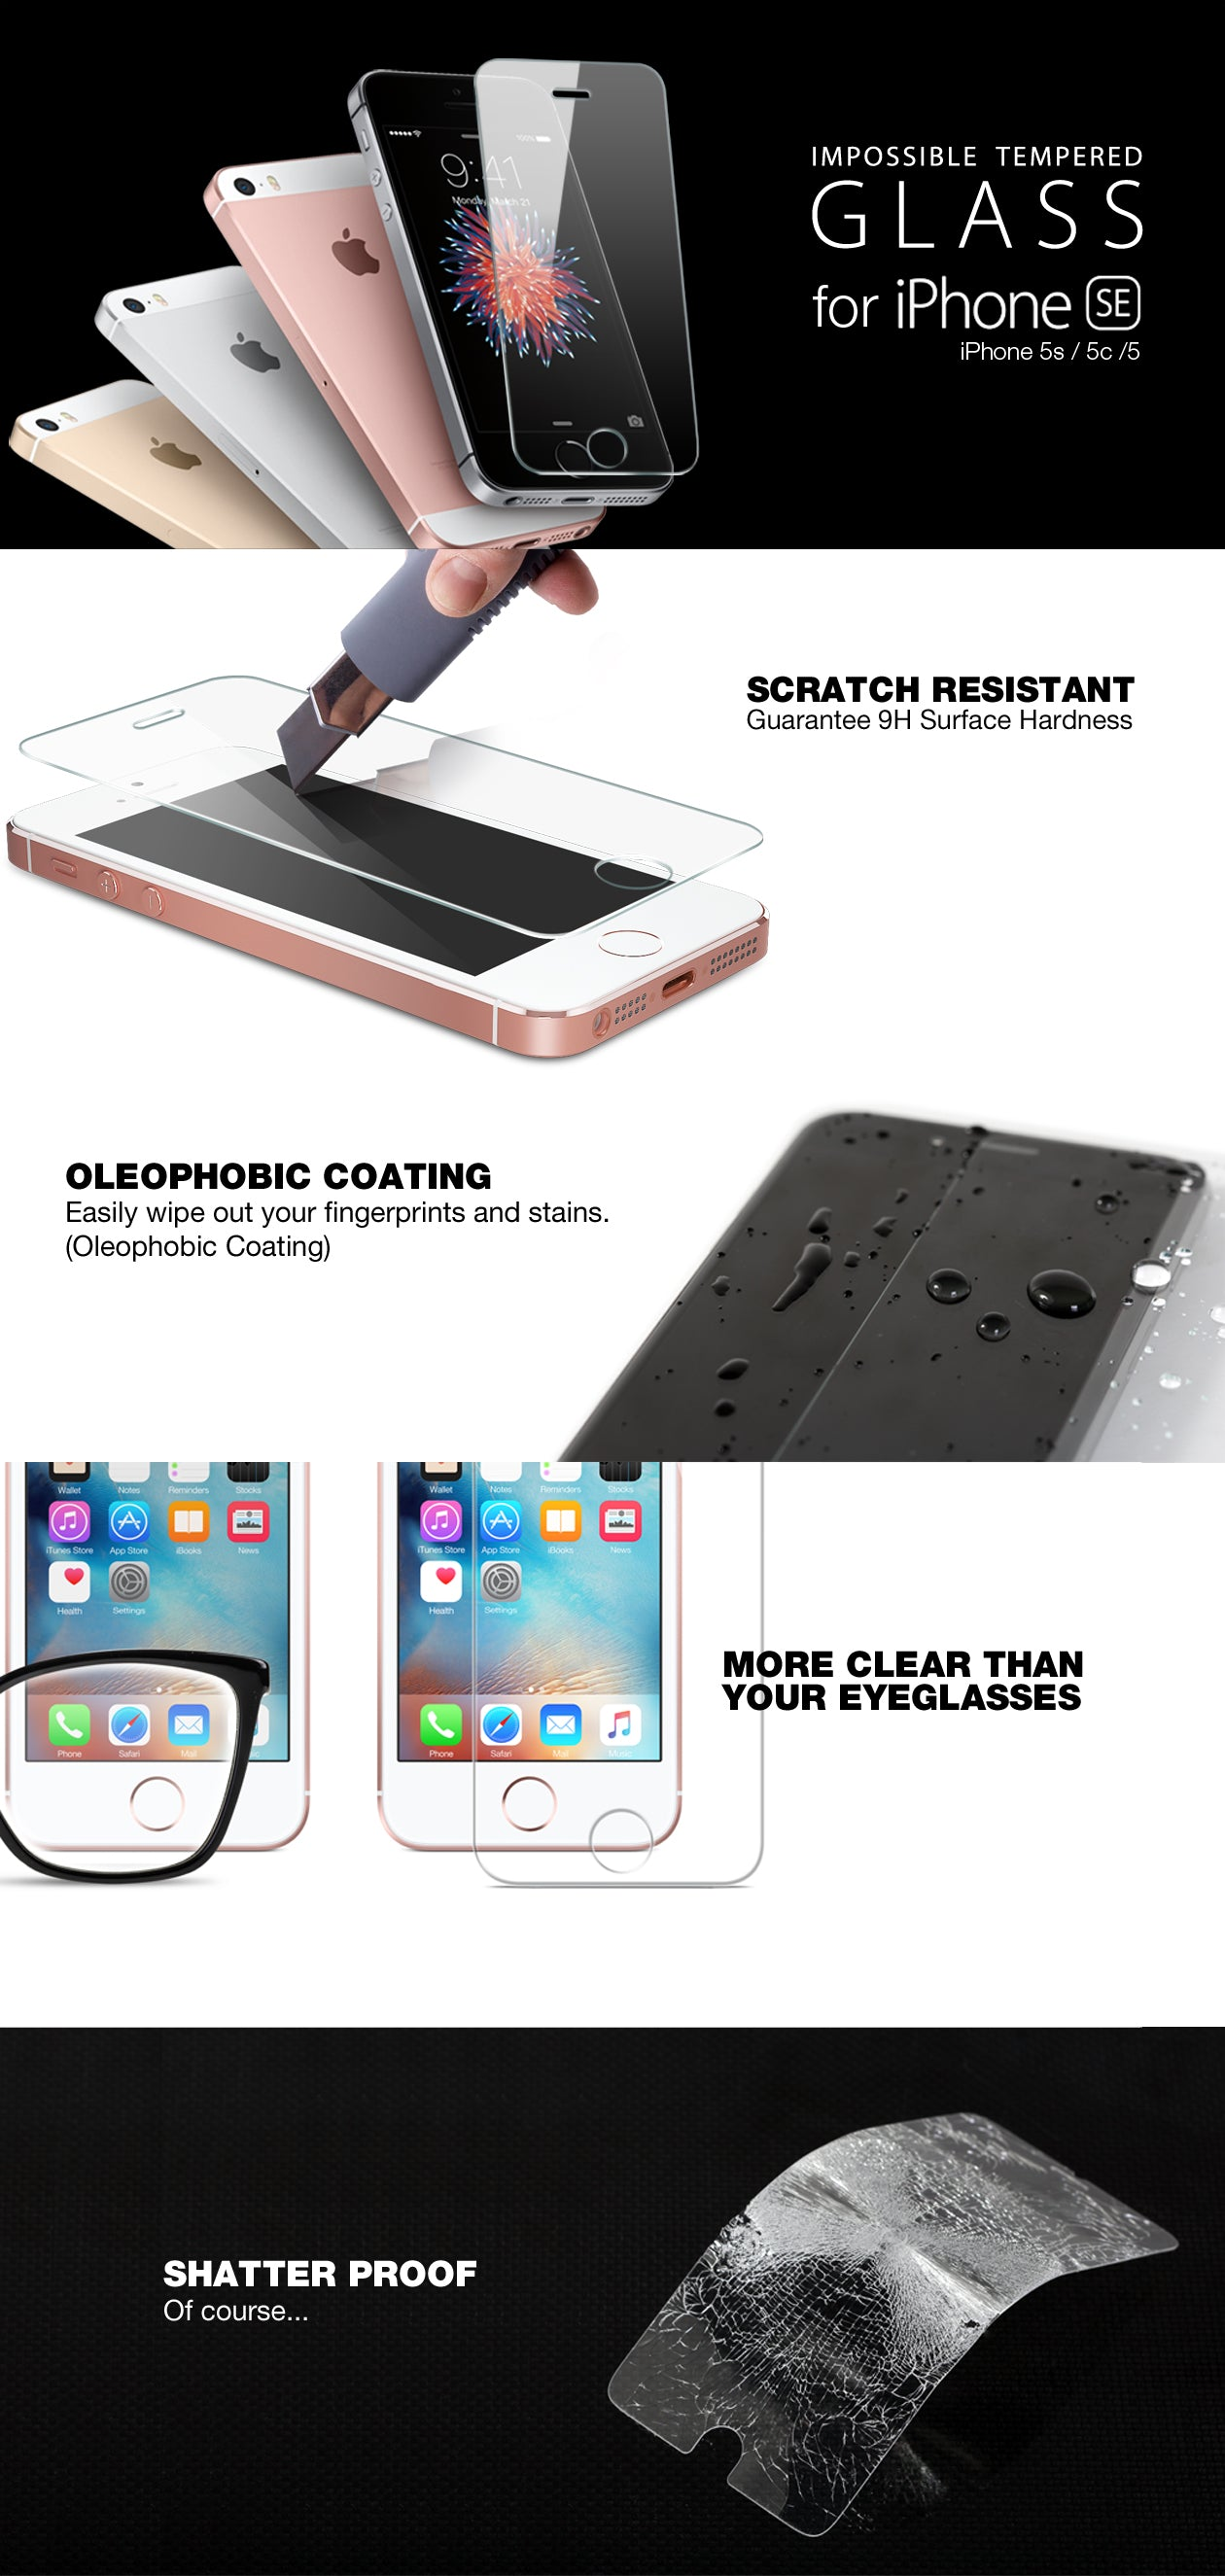 IPHONE ES iPhone 5s iPhone 5c iPhone 5 GLASS SCREEN PROTECTOR ITG ESSENTIAL